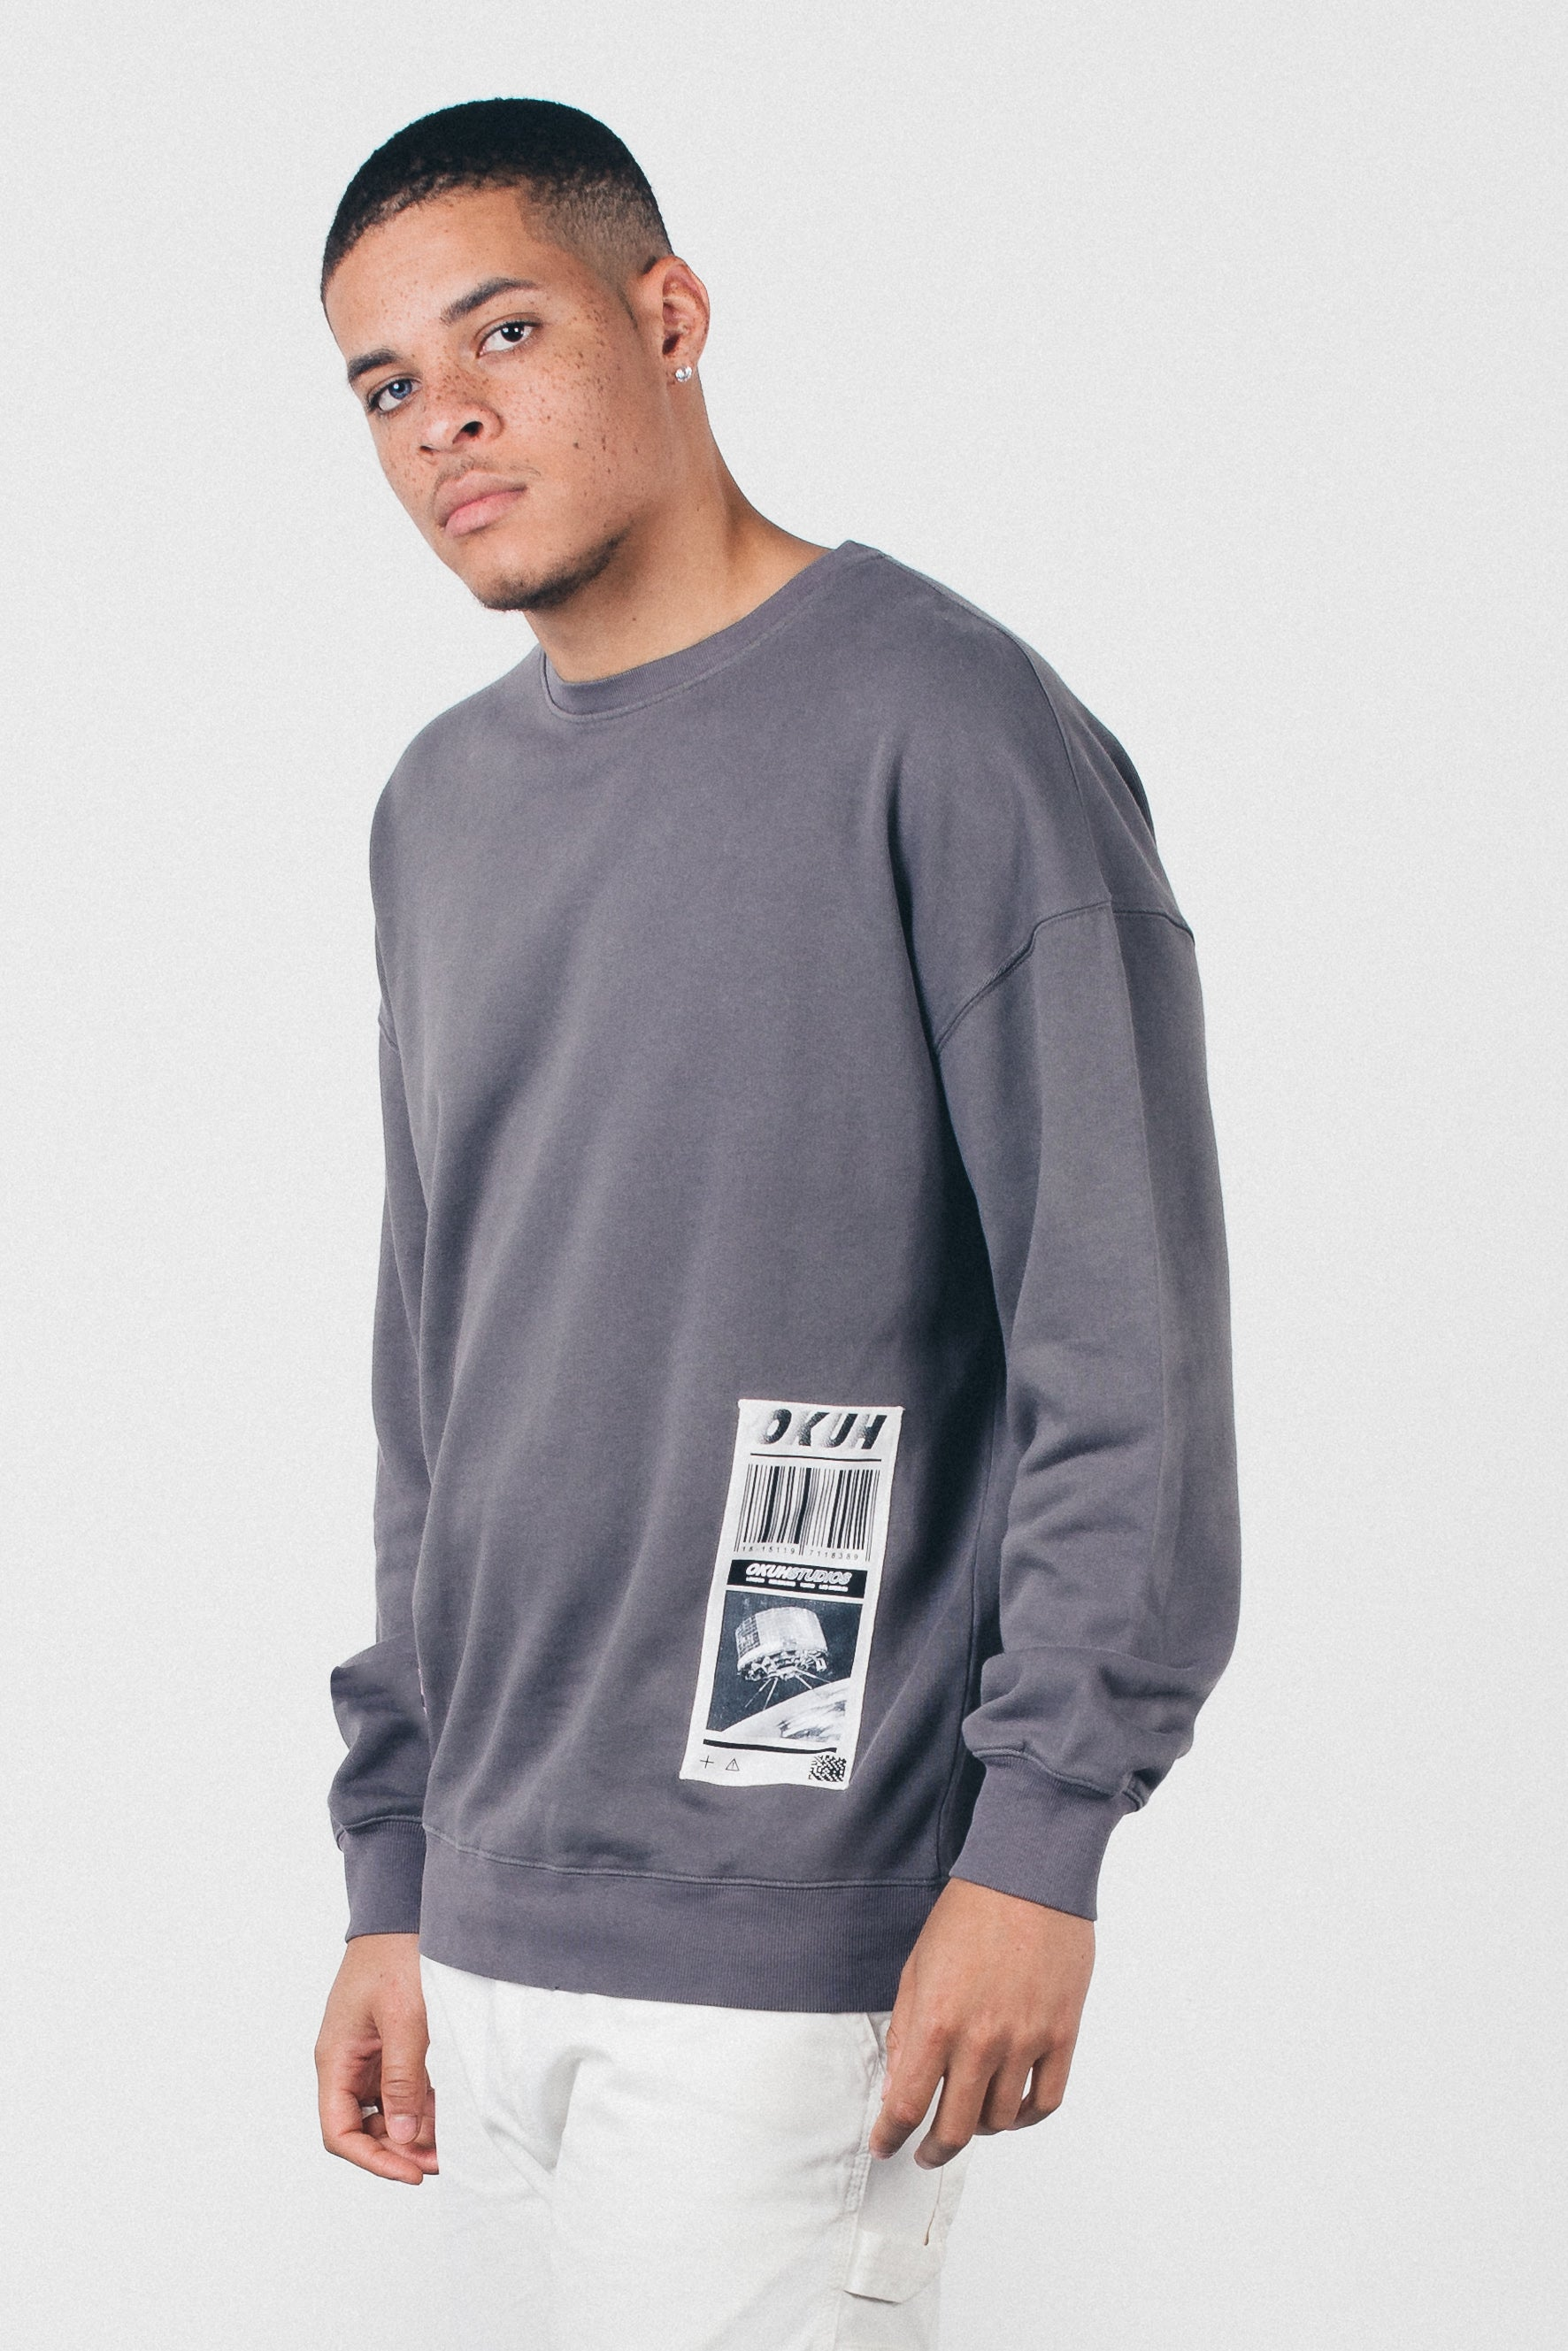 Code - Black washed Sweatshirt